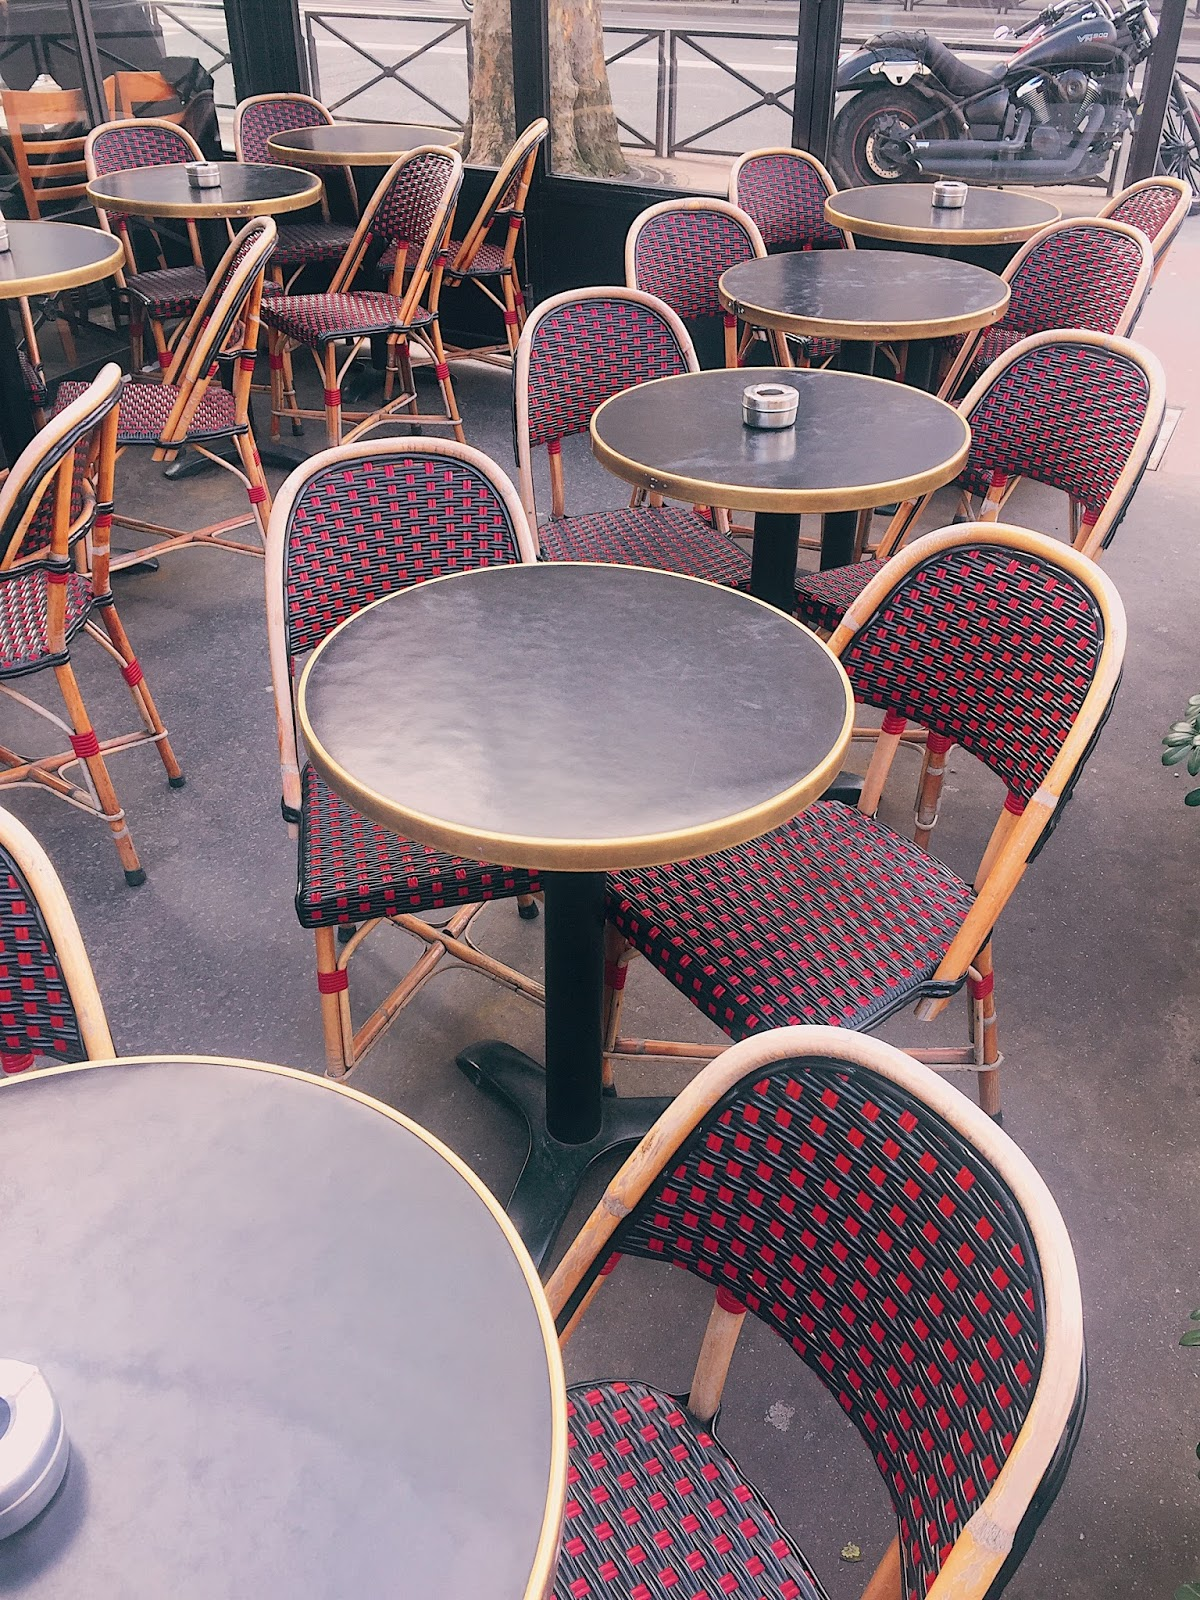 instagram guide to paris, must shot pics paris, where to take pictures in paris, what to capture in paris, paris, paris travel guide, paris cafe chairs, paris cafe